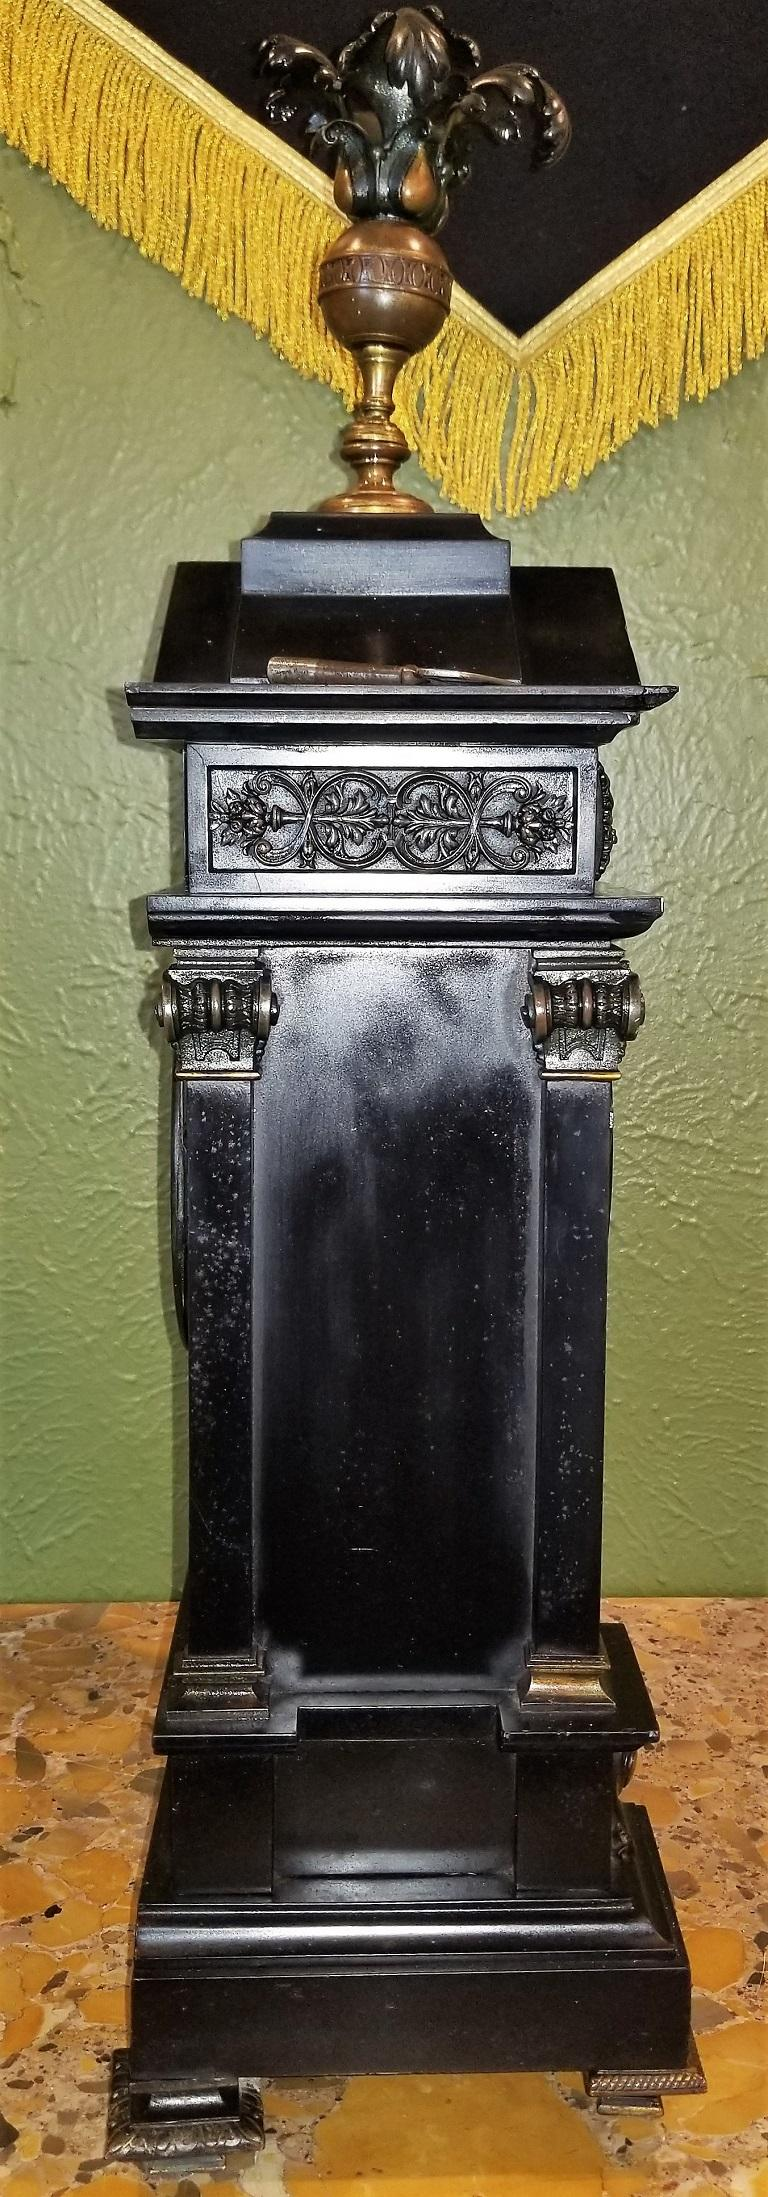 19th Century French Slate & Bronze Clock by Marti For Sale 12